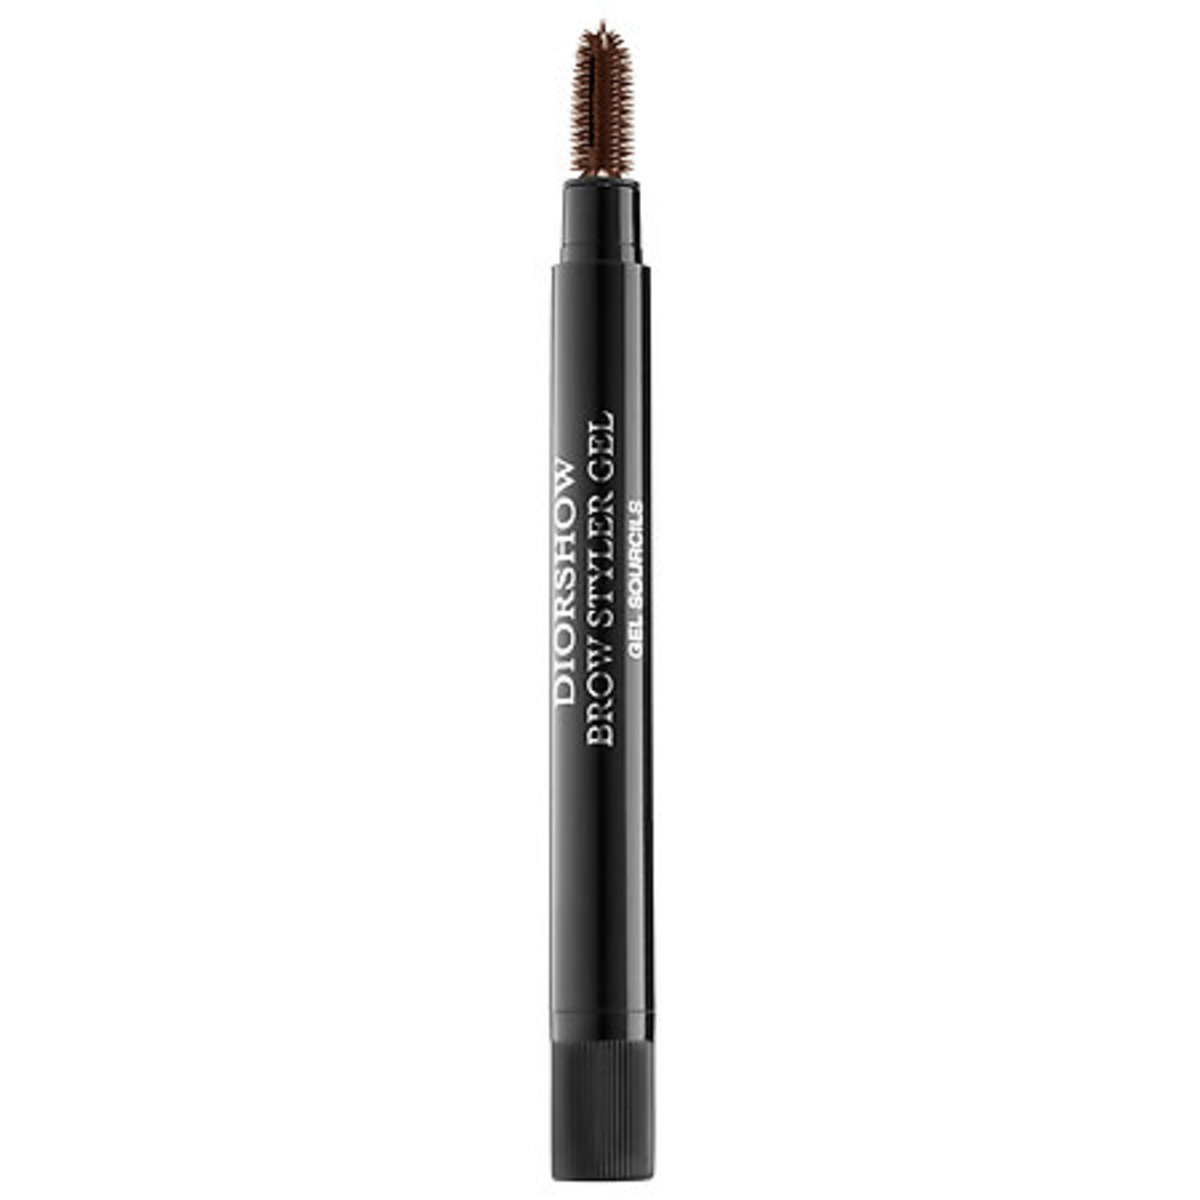 The Brow Gel Stephanie Swears By Over Any Other Fashionista